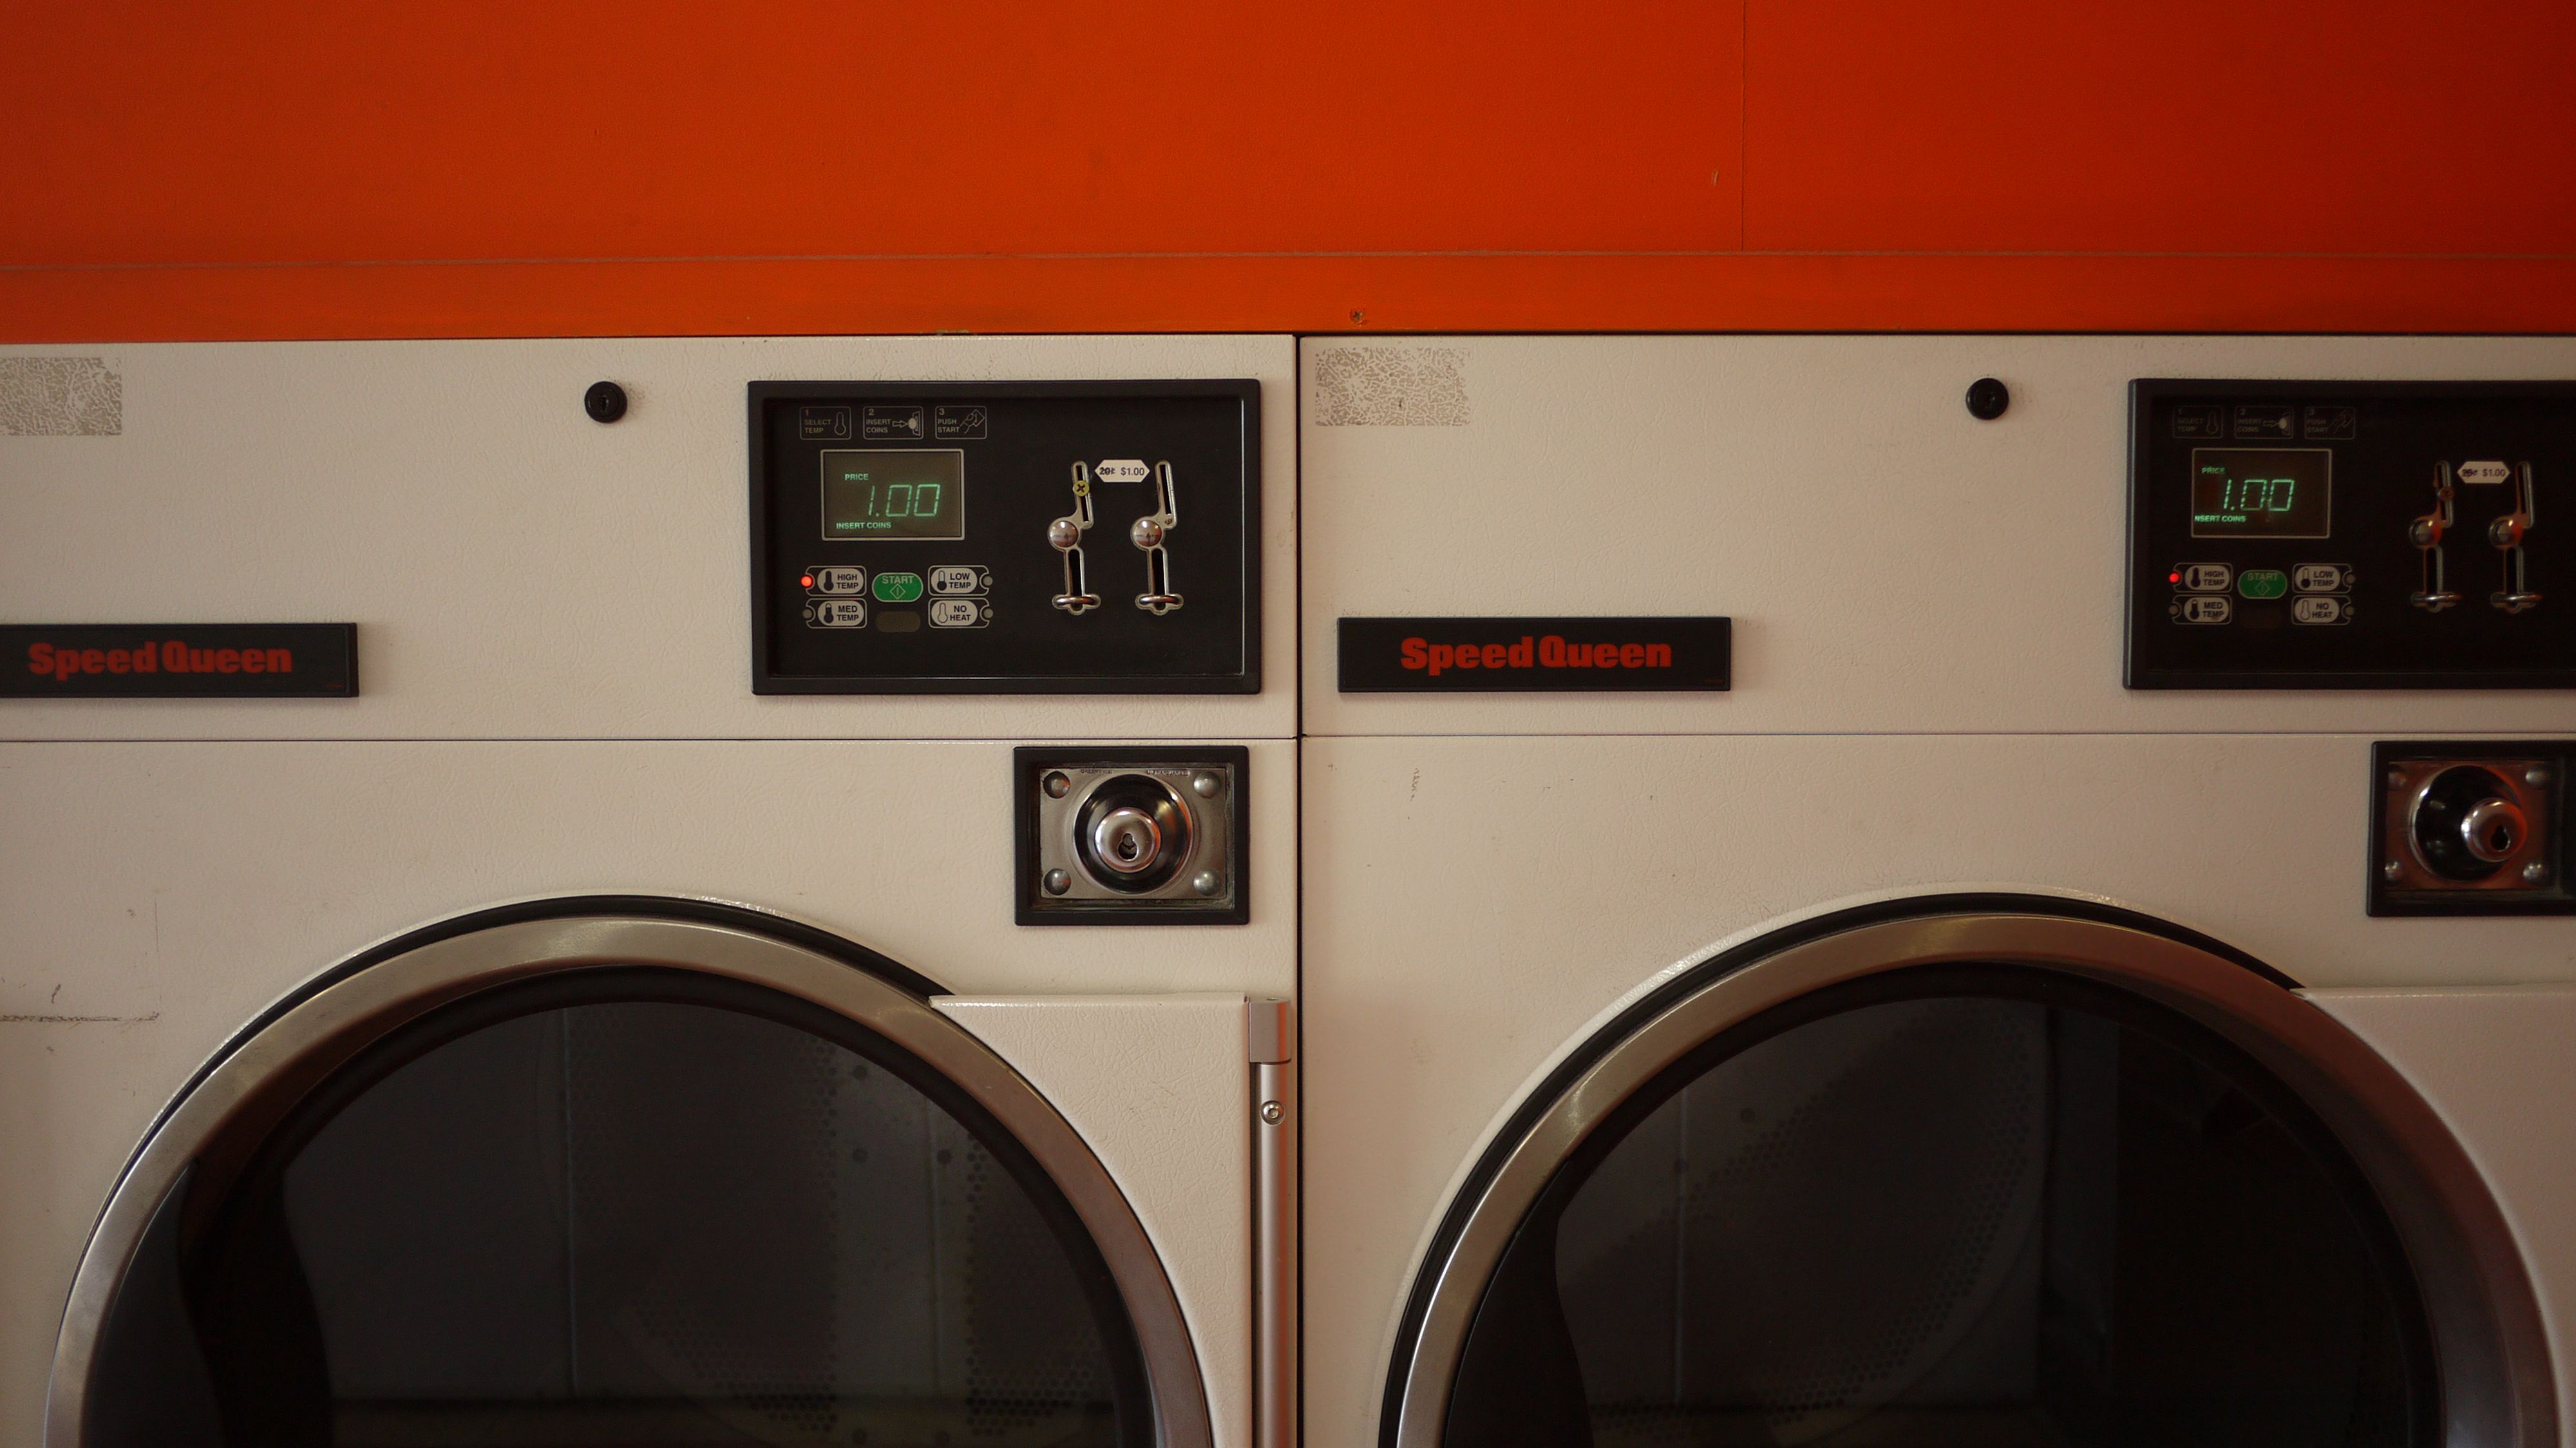 Laundromat 1 Speed Queen Tumble Dryers With Images Tumble